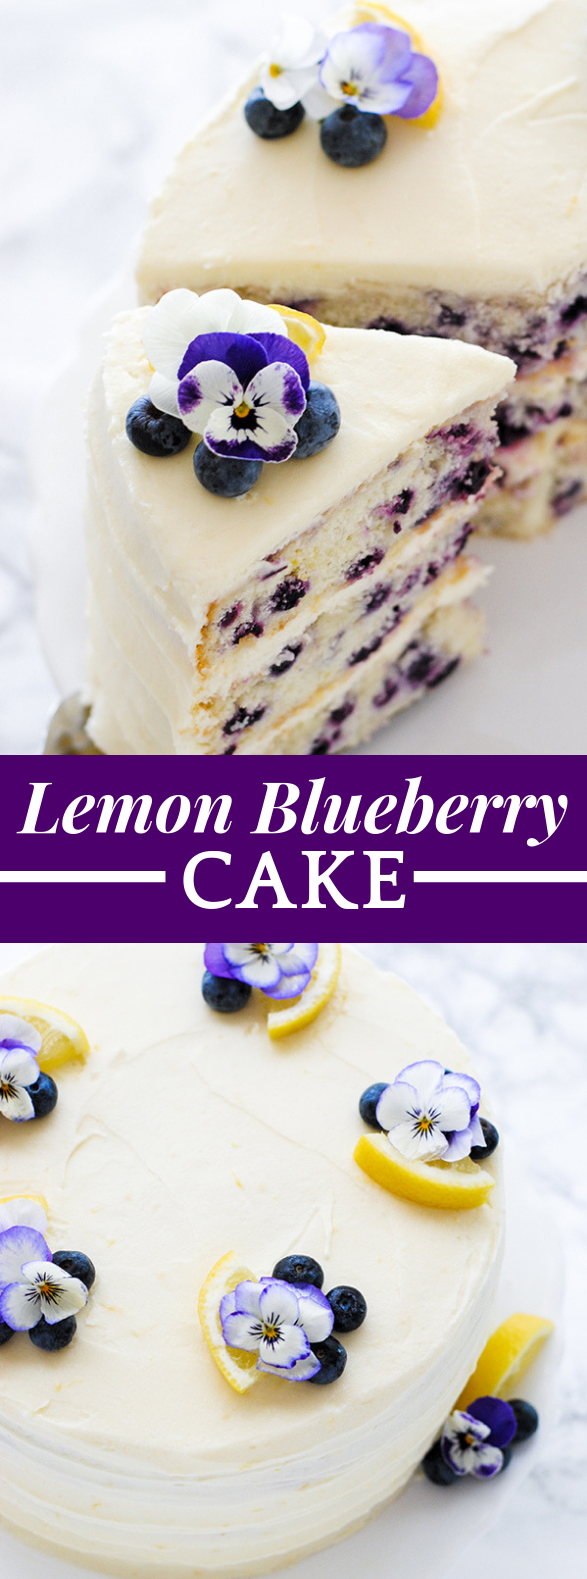 LEMON BLUEBERRY CAKE #dessert #partycake